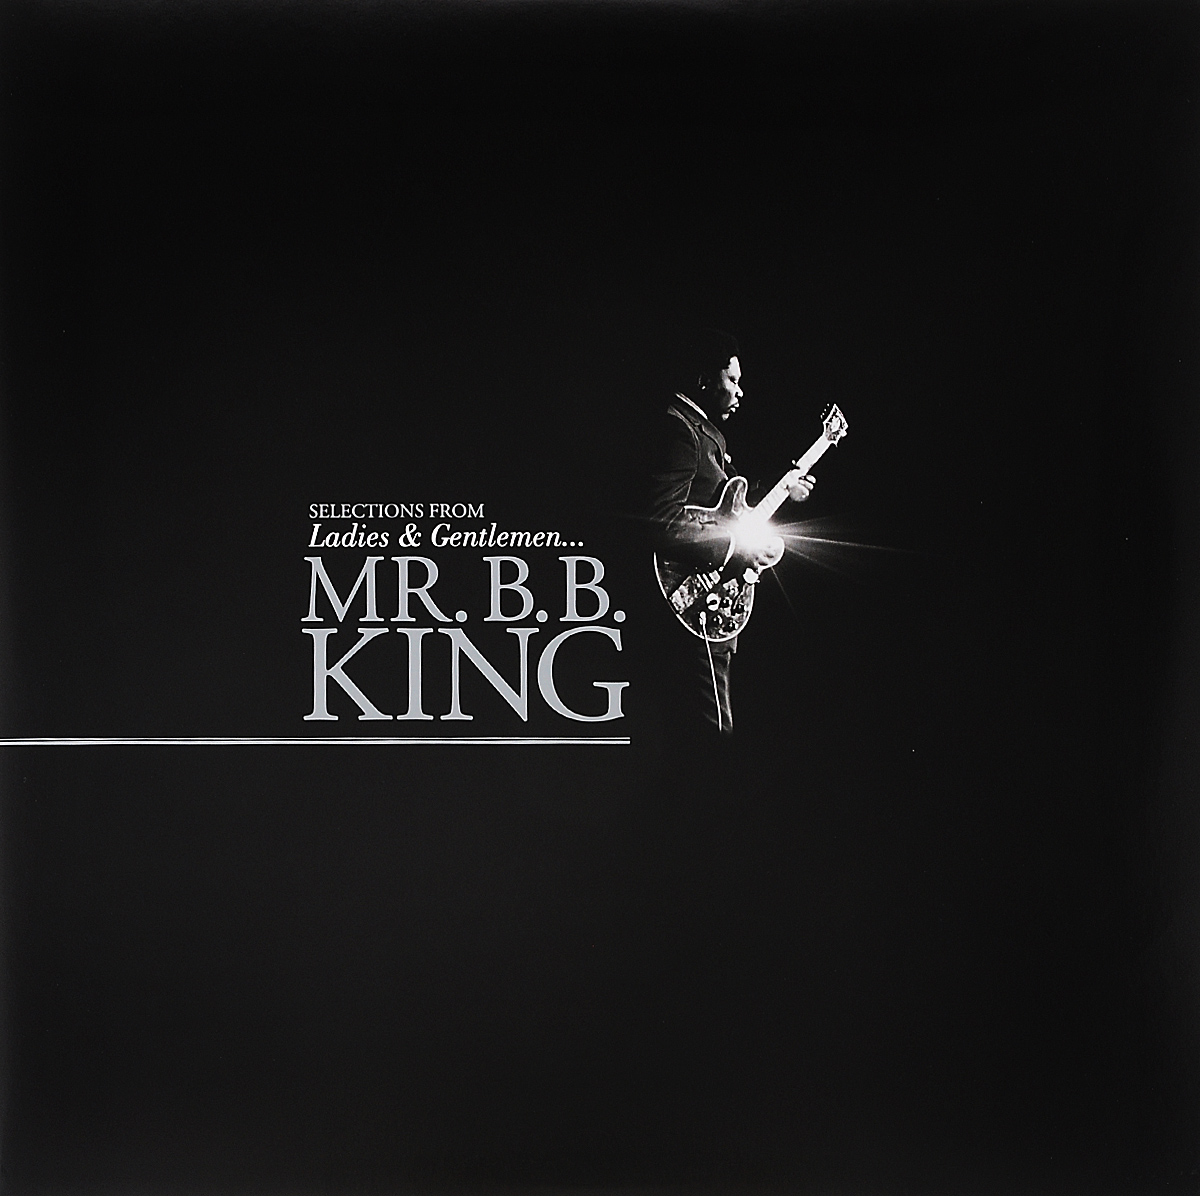 Би Би Кинг B.B. King. Selections From Ladies And Gentlemen... (2 LP) b b king ladies and gentlemen mr b b king 2 lp